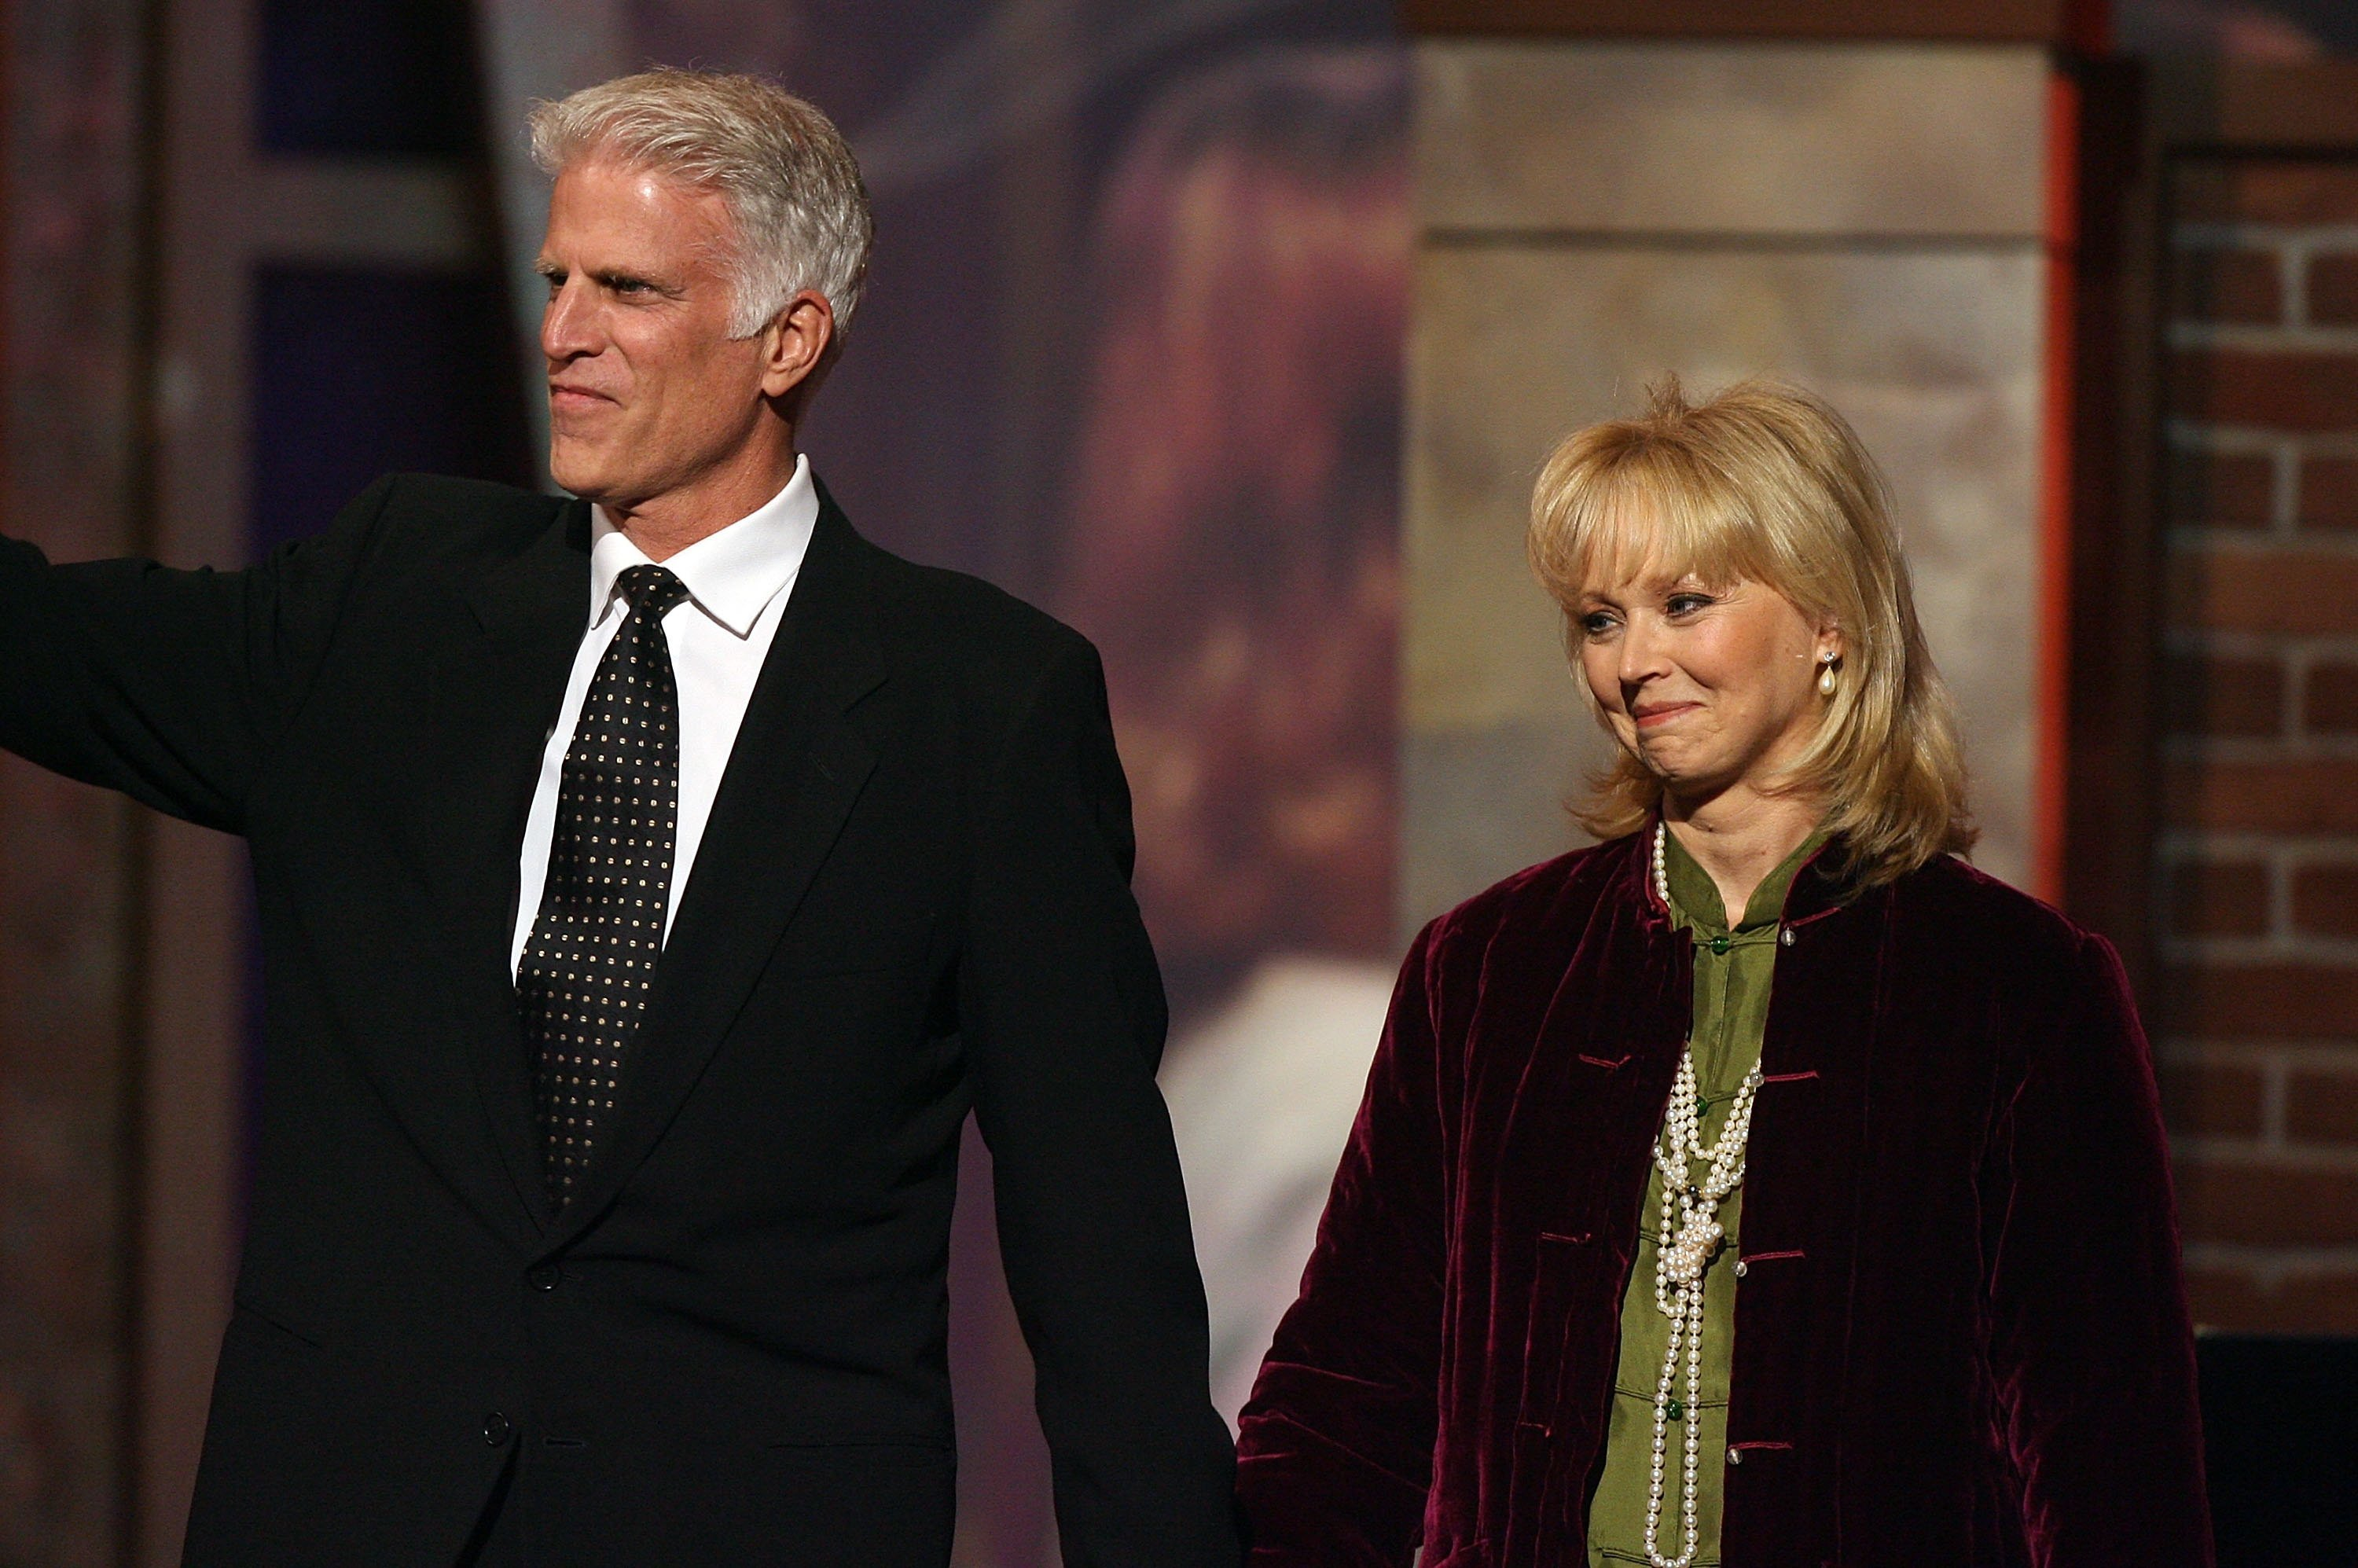 Ted Danson and Shelley Long onstage at the 2006 TV Land Awards at the Barker Hangar on March 19, 2006 | Photo: GettyImages